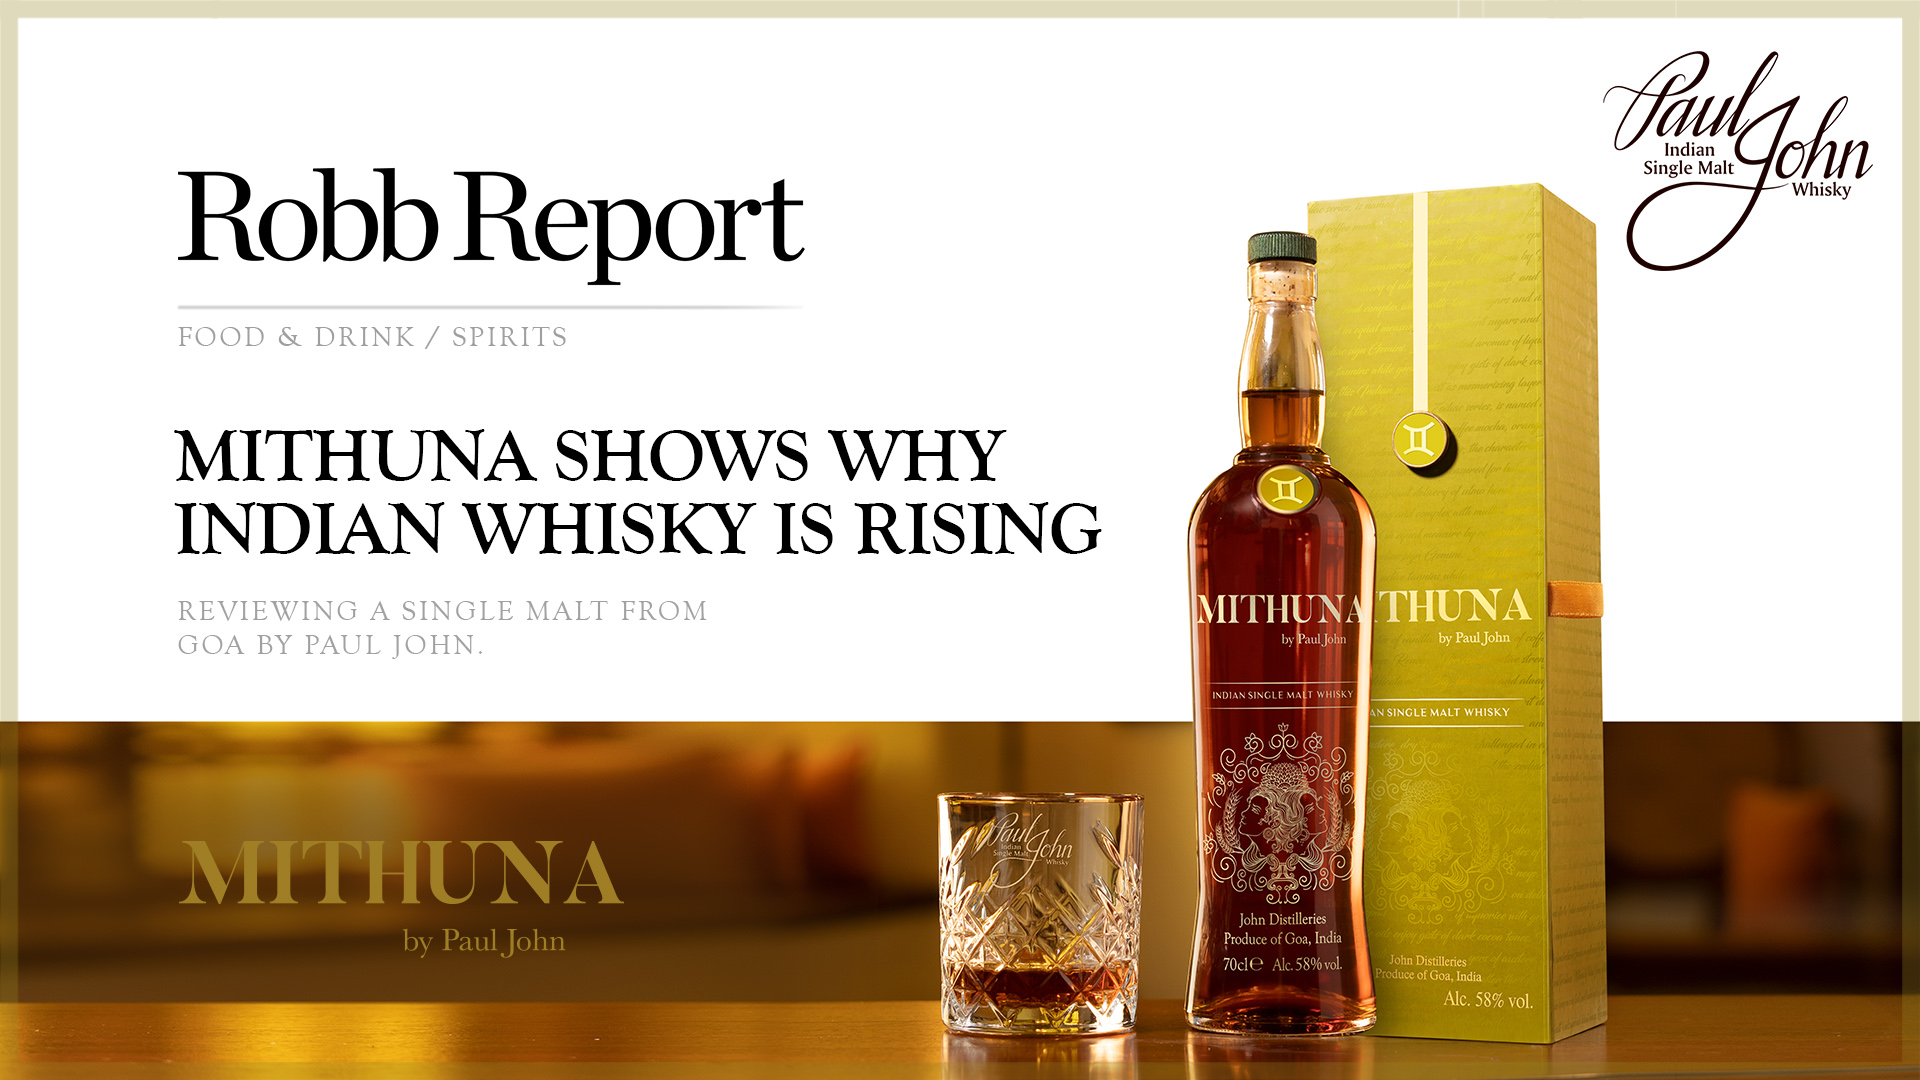 Mithuna Shows Why Indian Whisky Is Rising by Robb Report